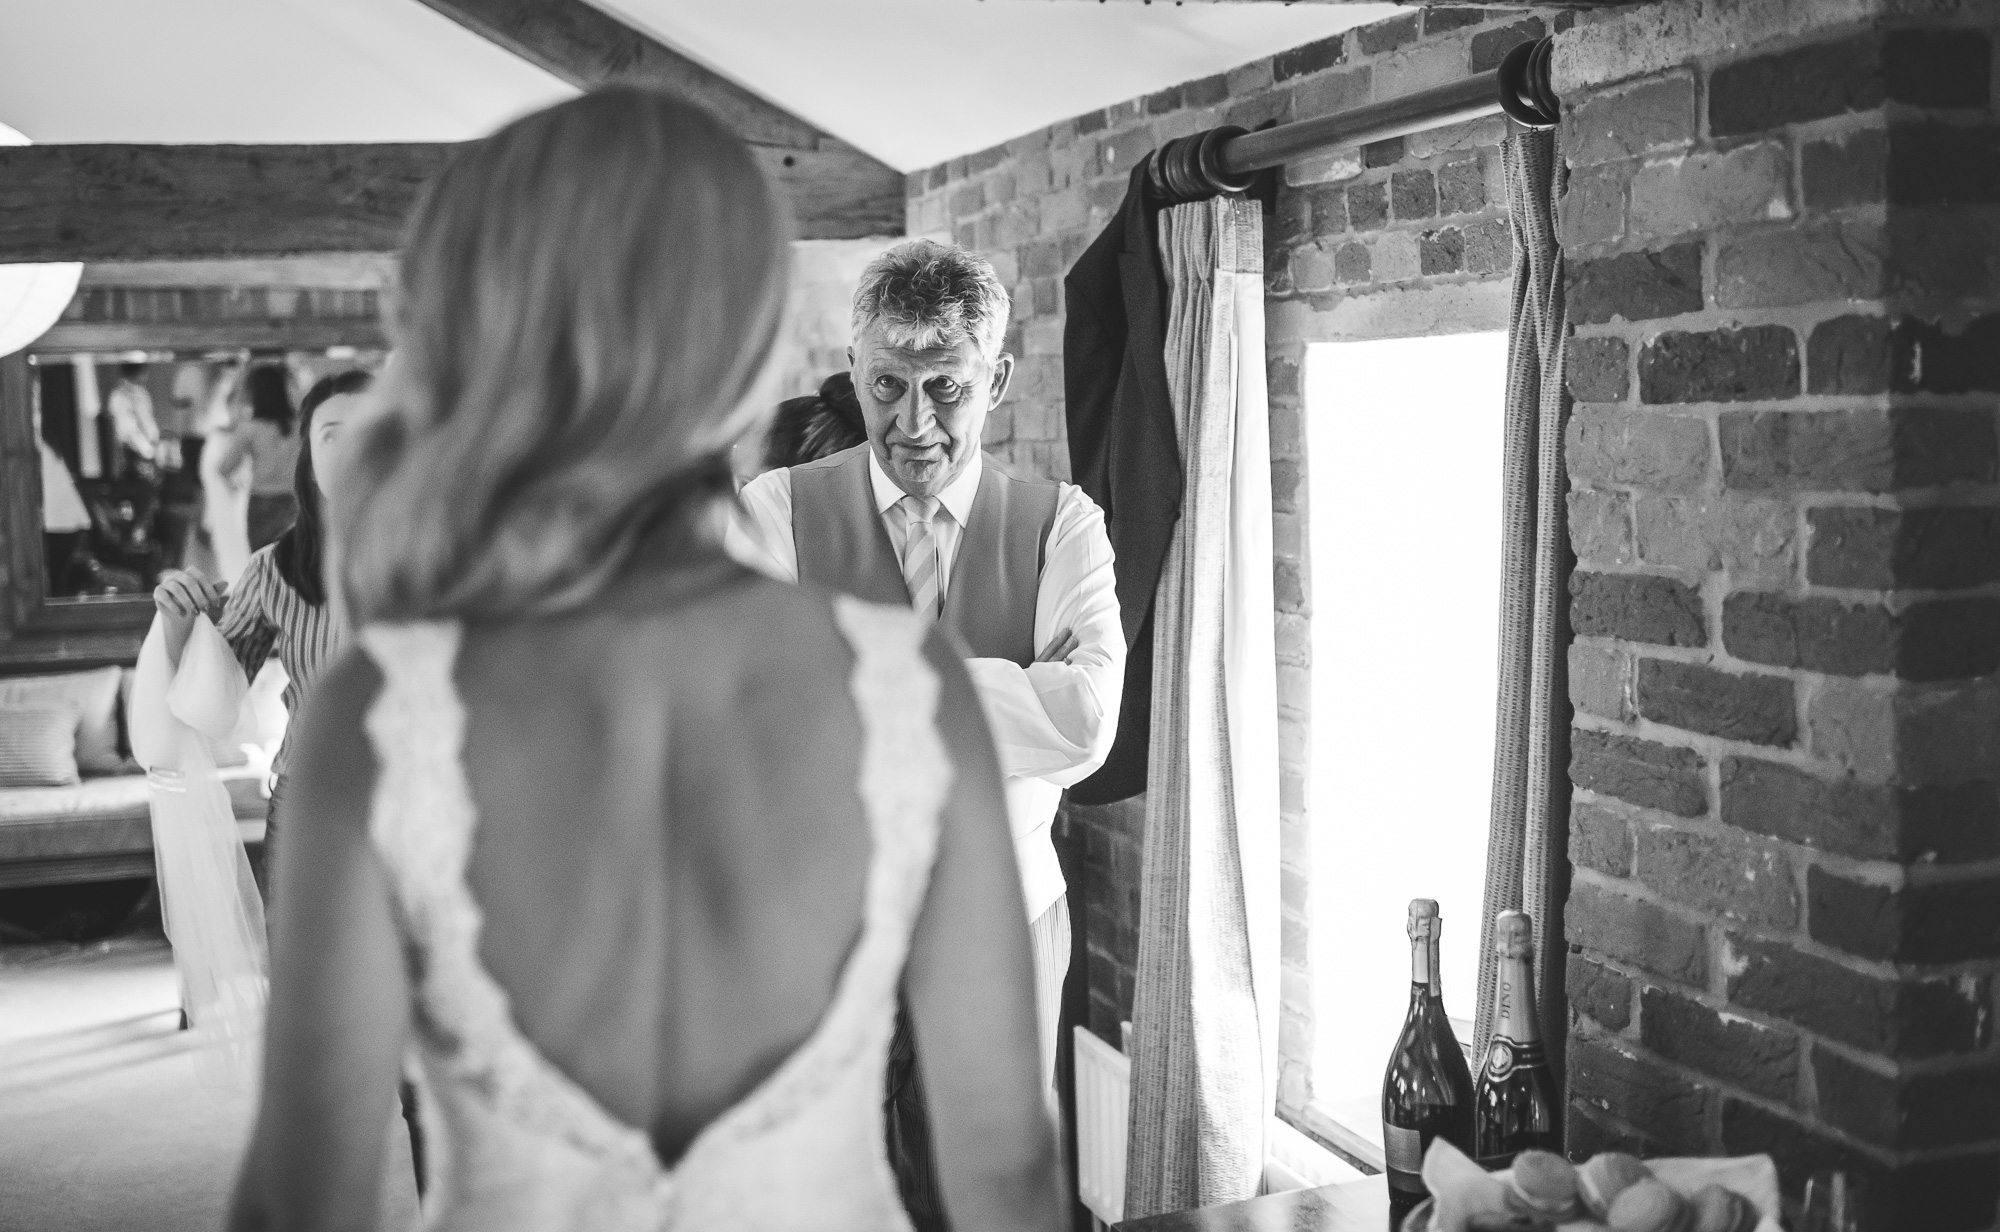 Suzanne and Wayne - - Wasing Park wedding photography (42 of 175)